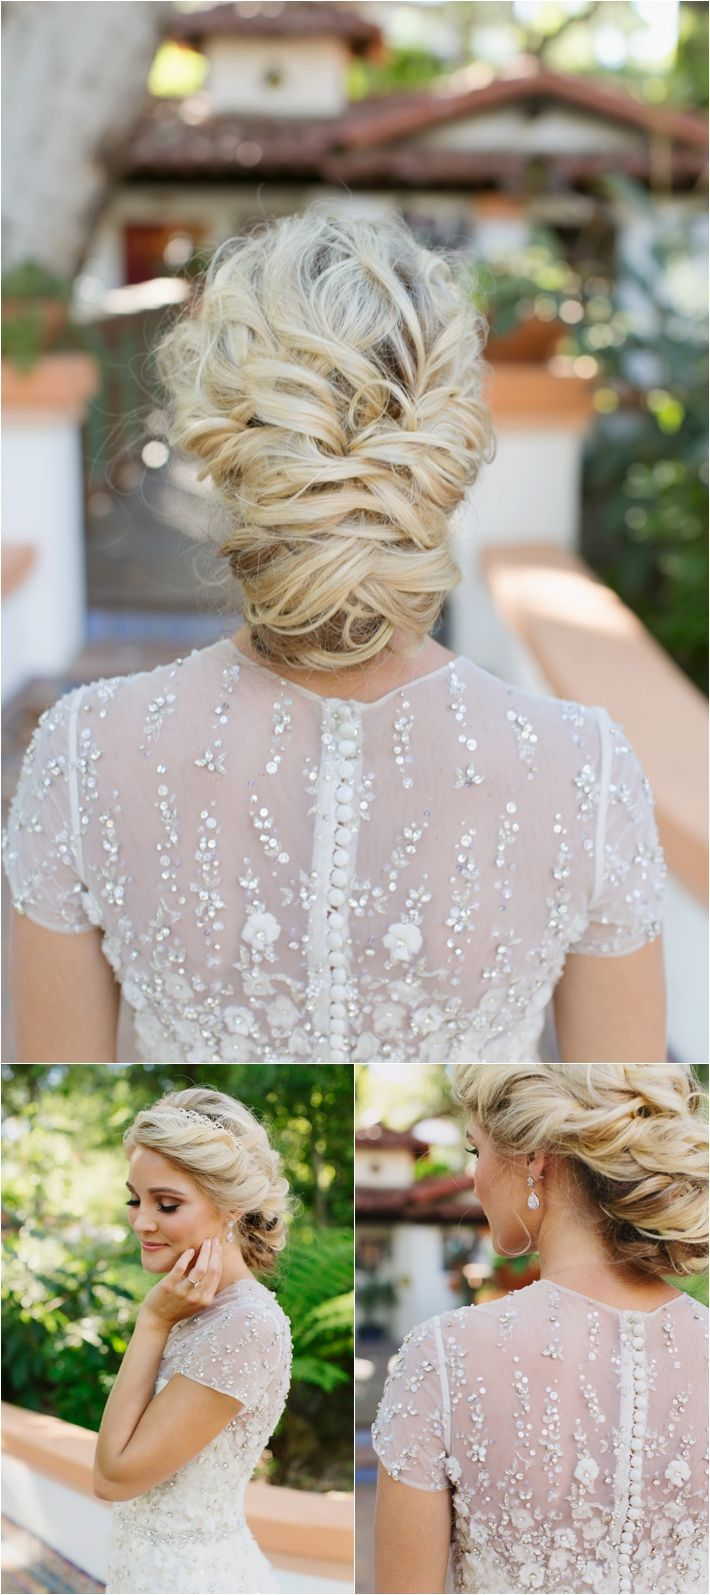 130 best Bridal Hairstyles images on Pinterest | Bridal hair, Bridal ...